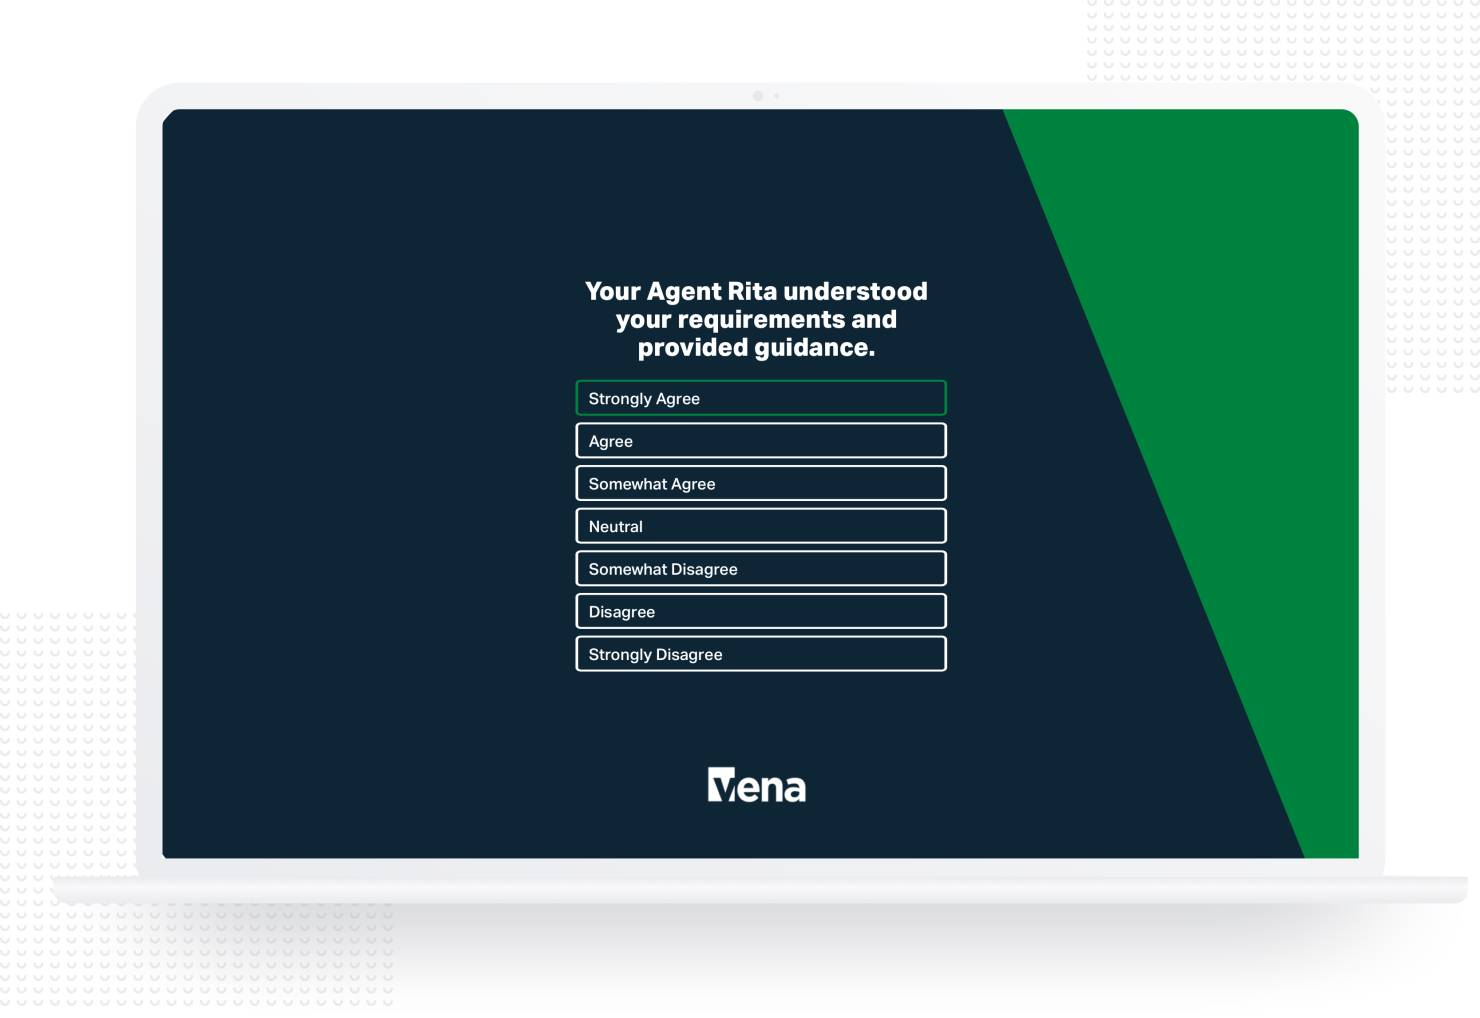 Vena Solutions survey 2